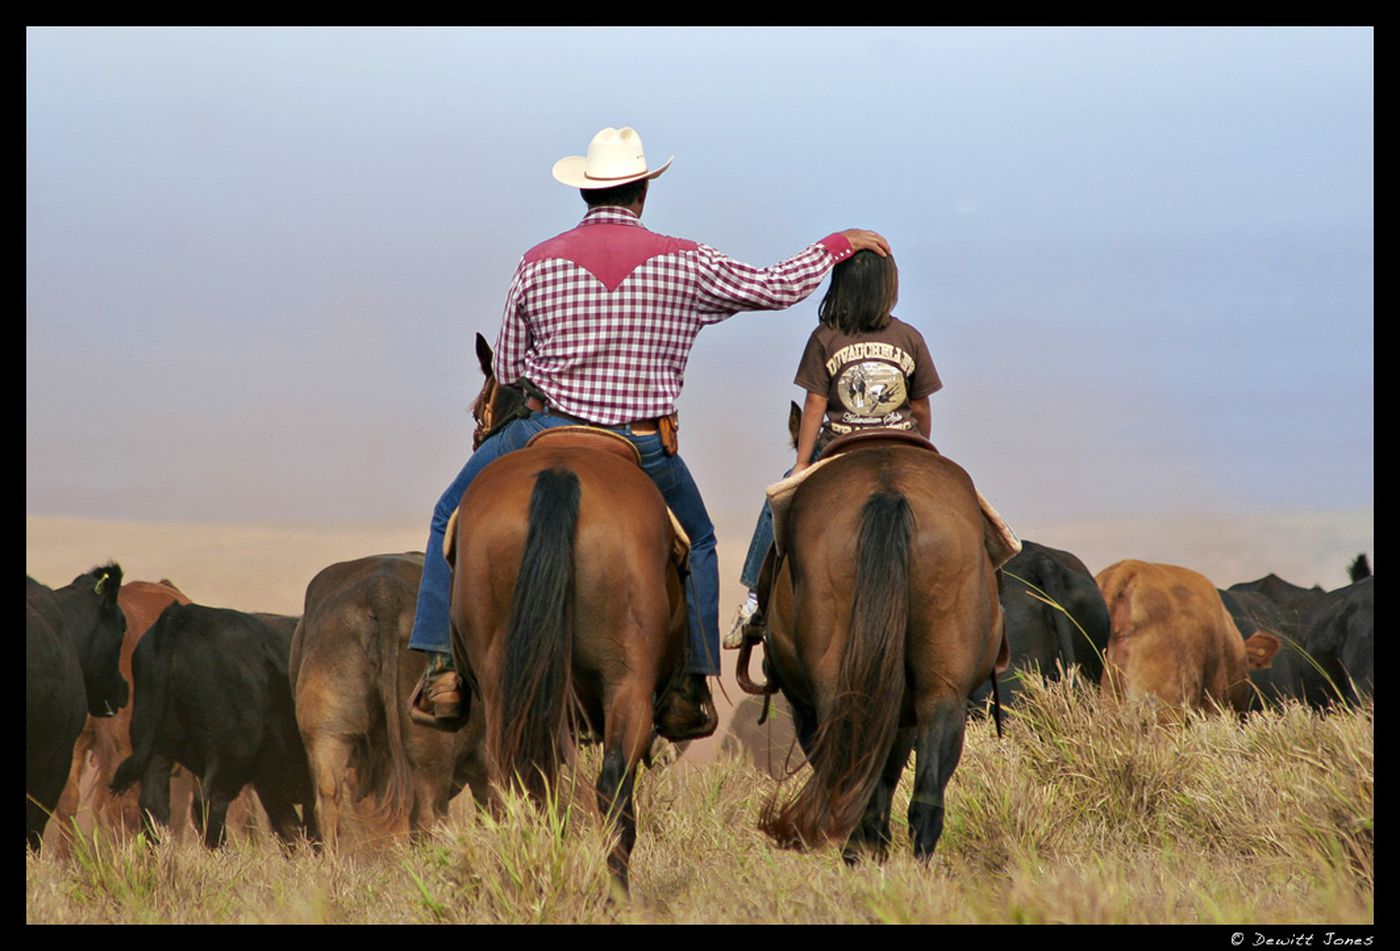 Image: Cowboy puts his hand on a child's head as they ride horses next to each other